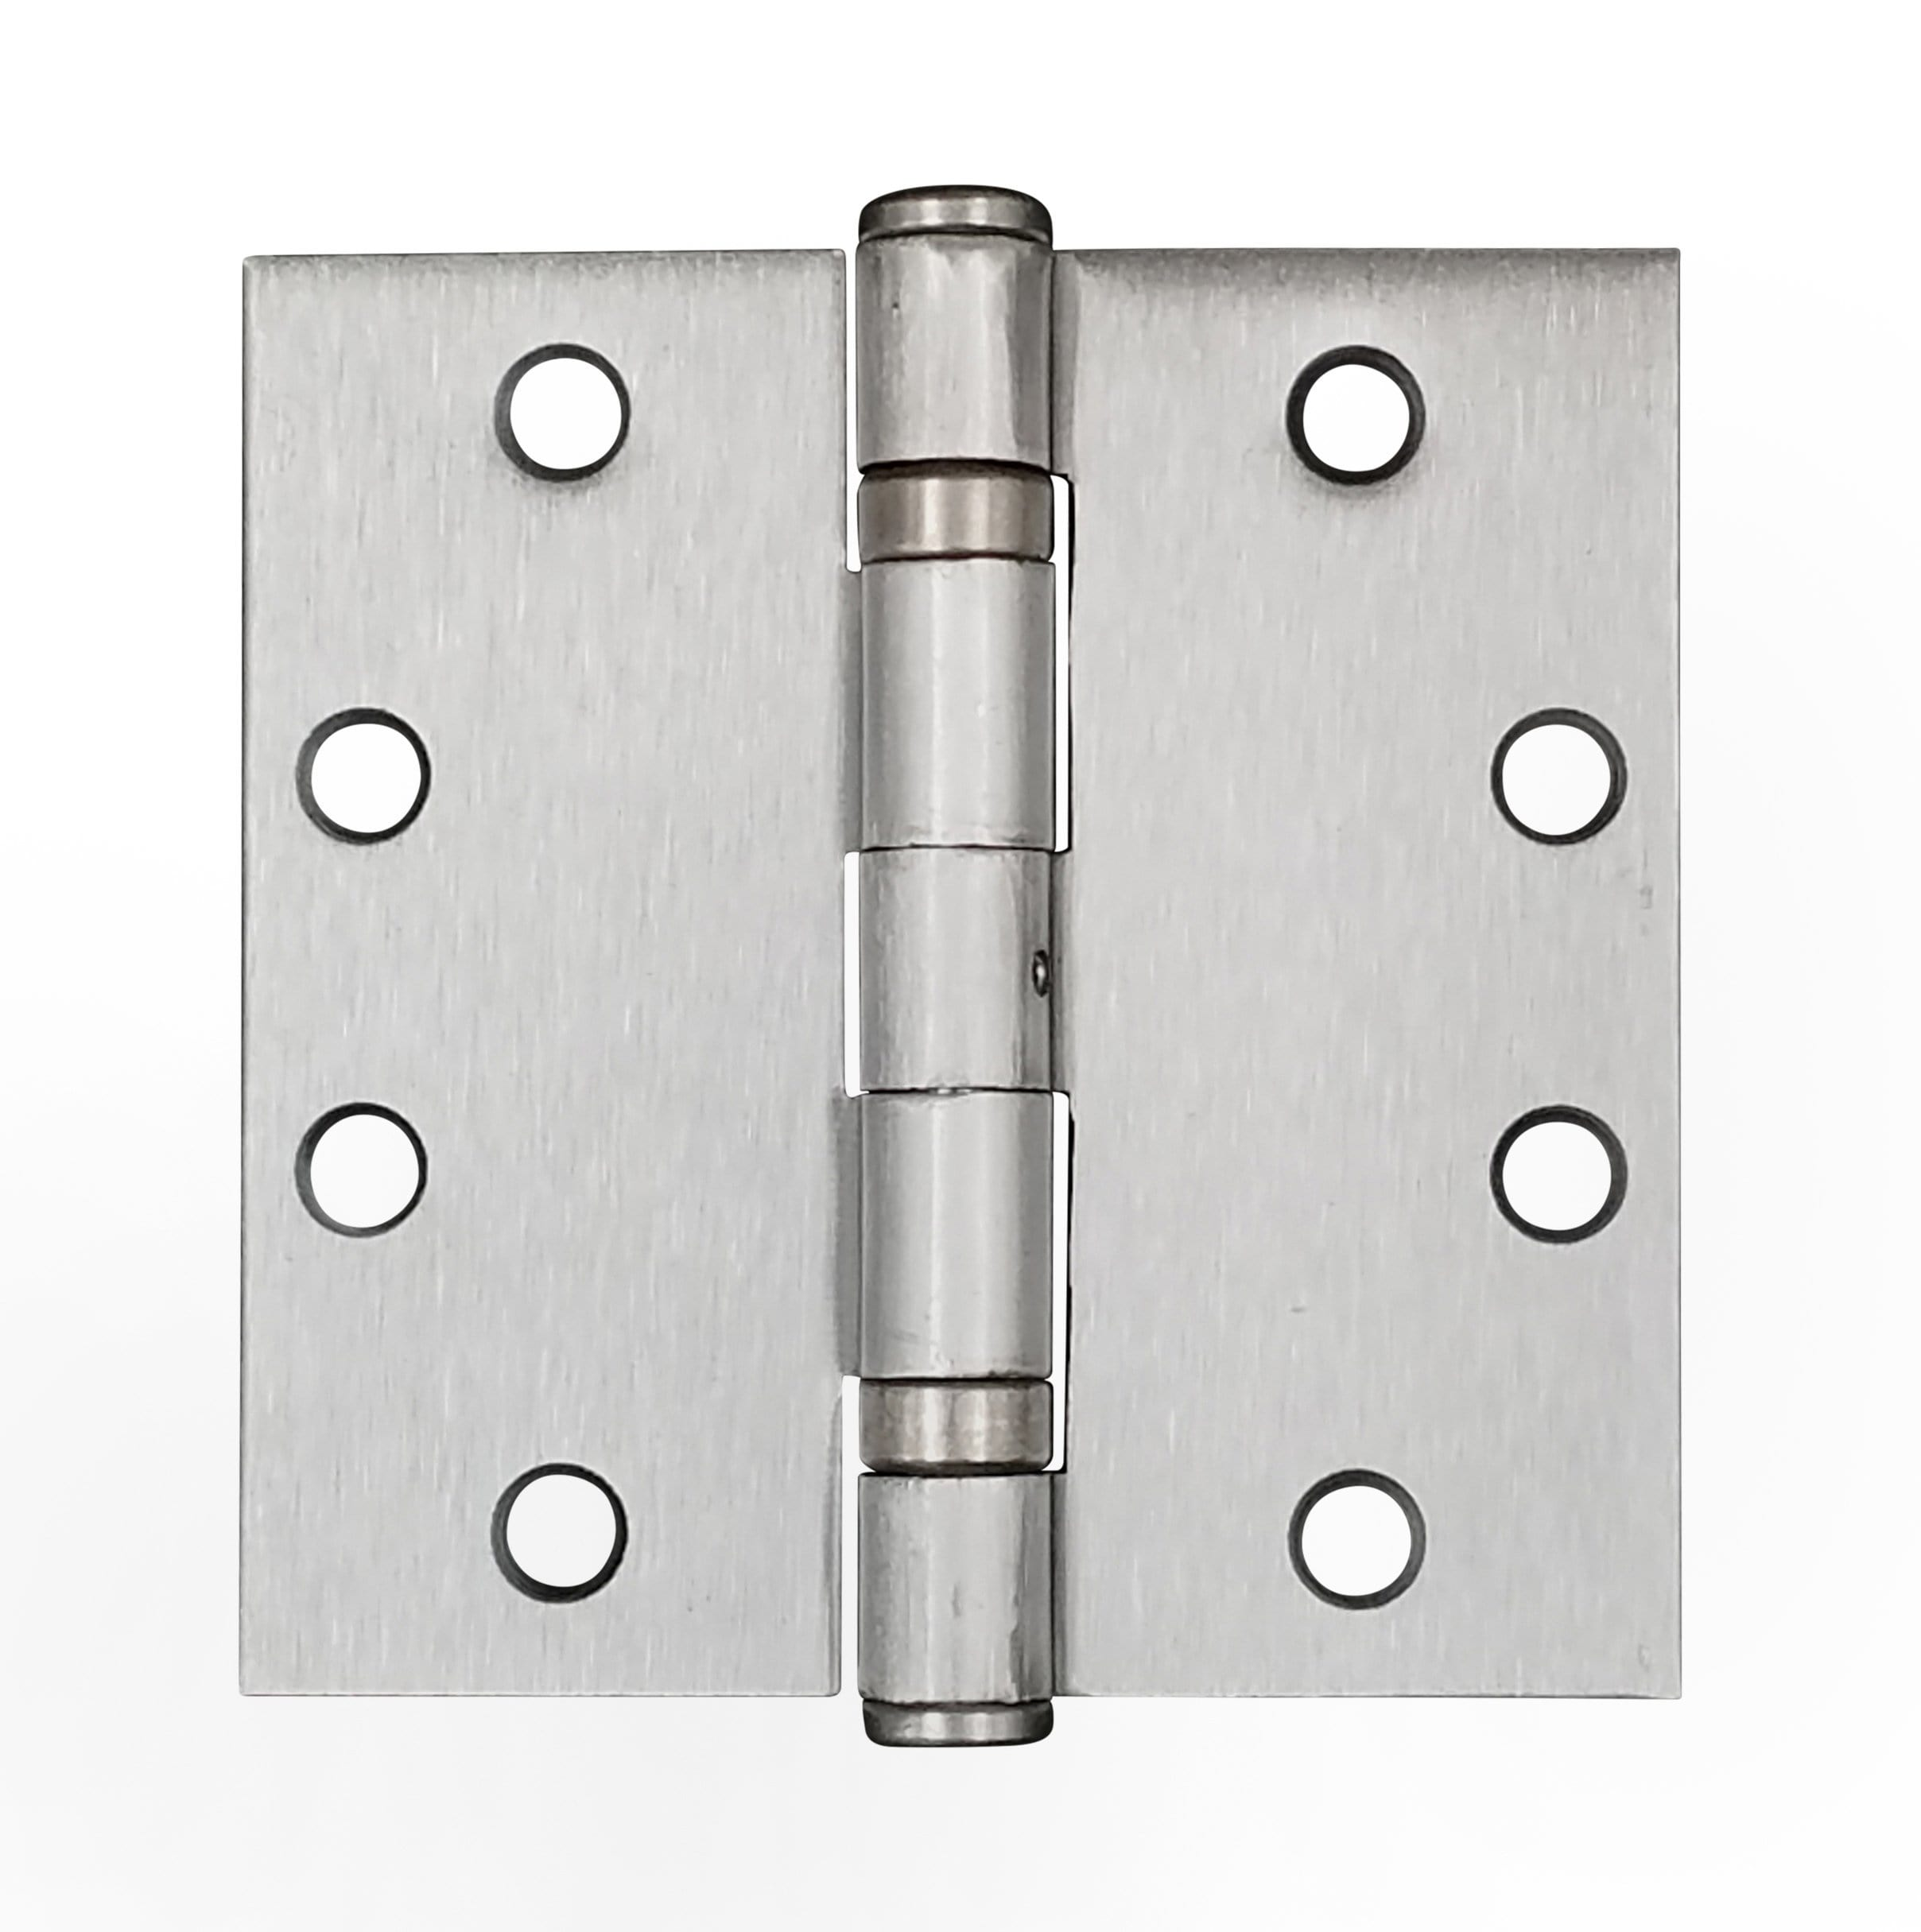 "4 1/2"" x 4 1/2"" with square corners Satin Chrome Commercial Ball Bearing Hinge - Sold in Pairs"